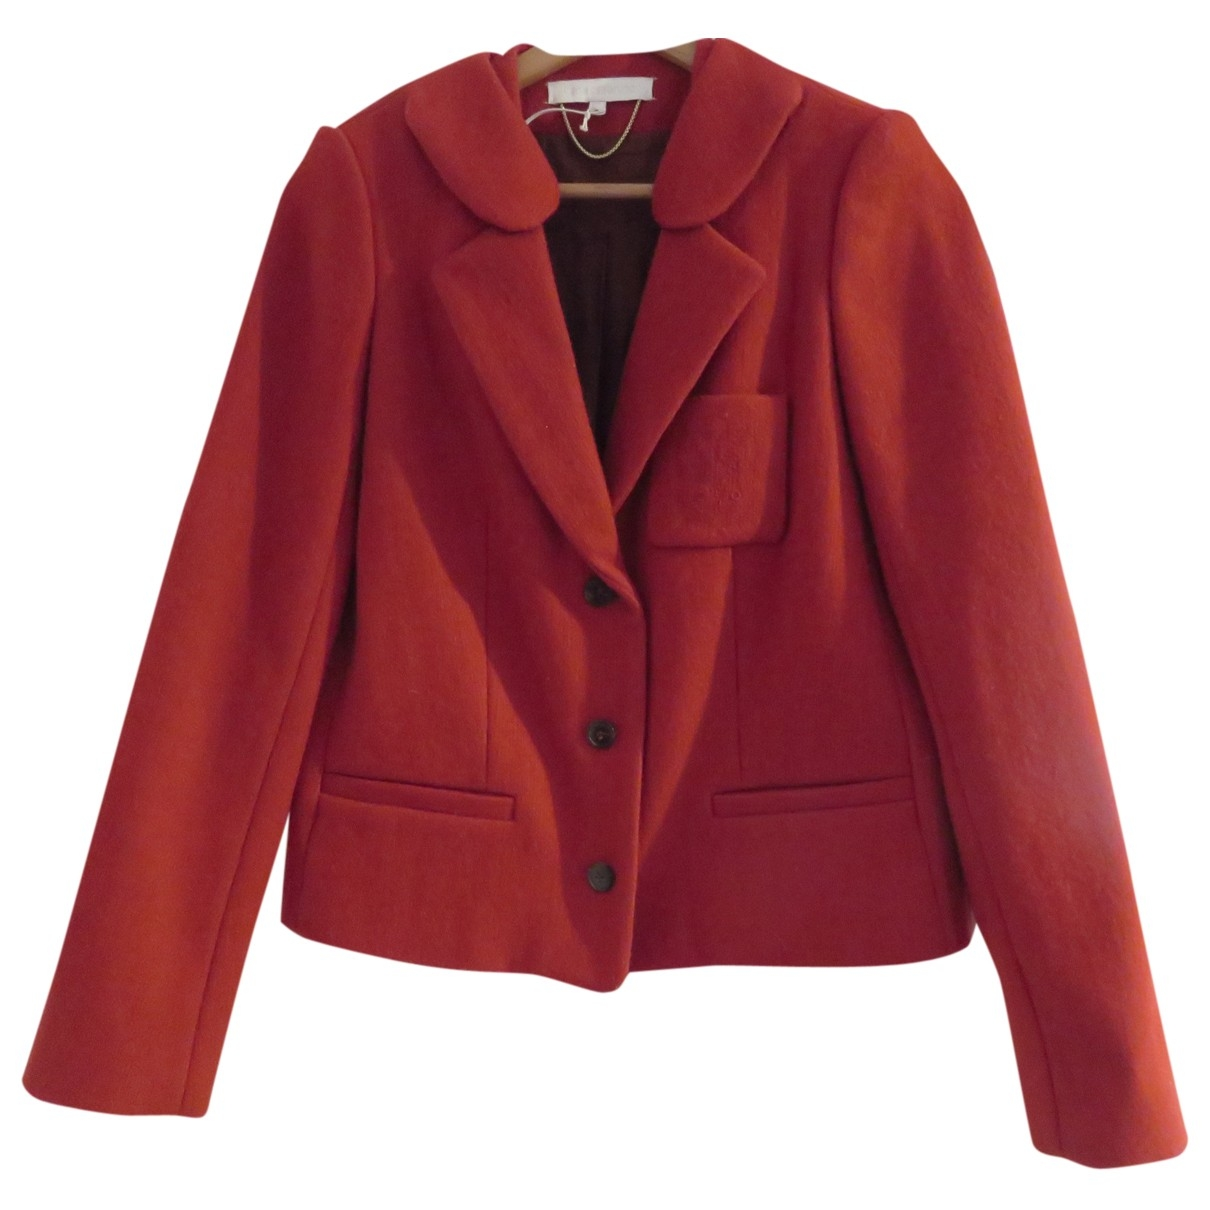 Vanessa Bruno \N Red Wool jacket for Women 36 FR